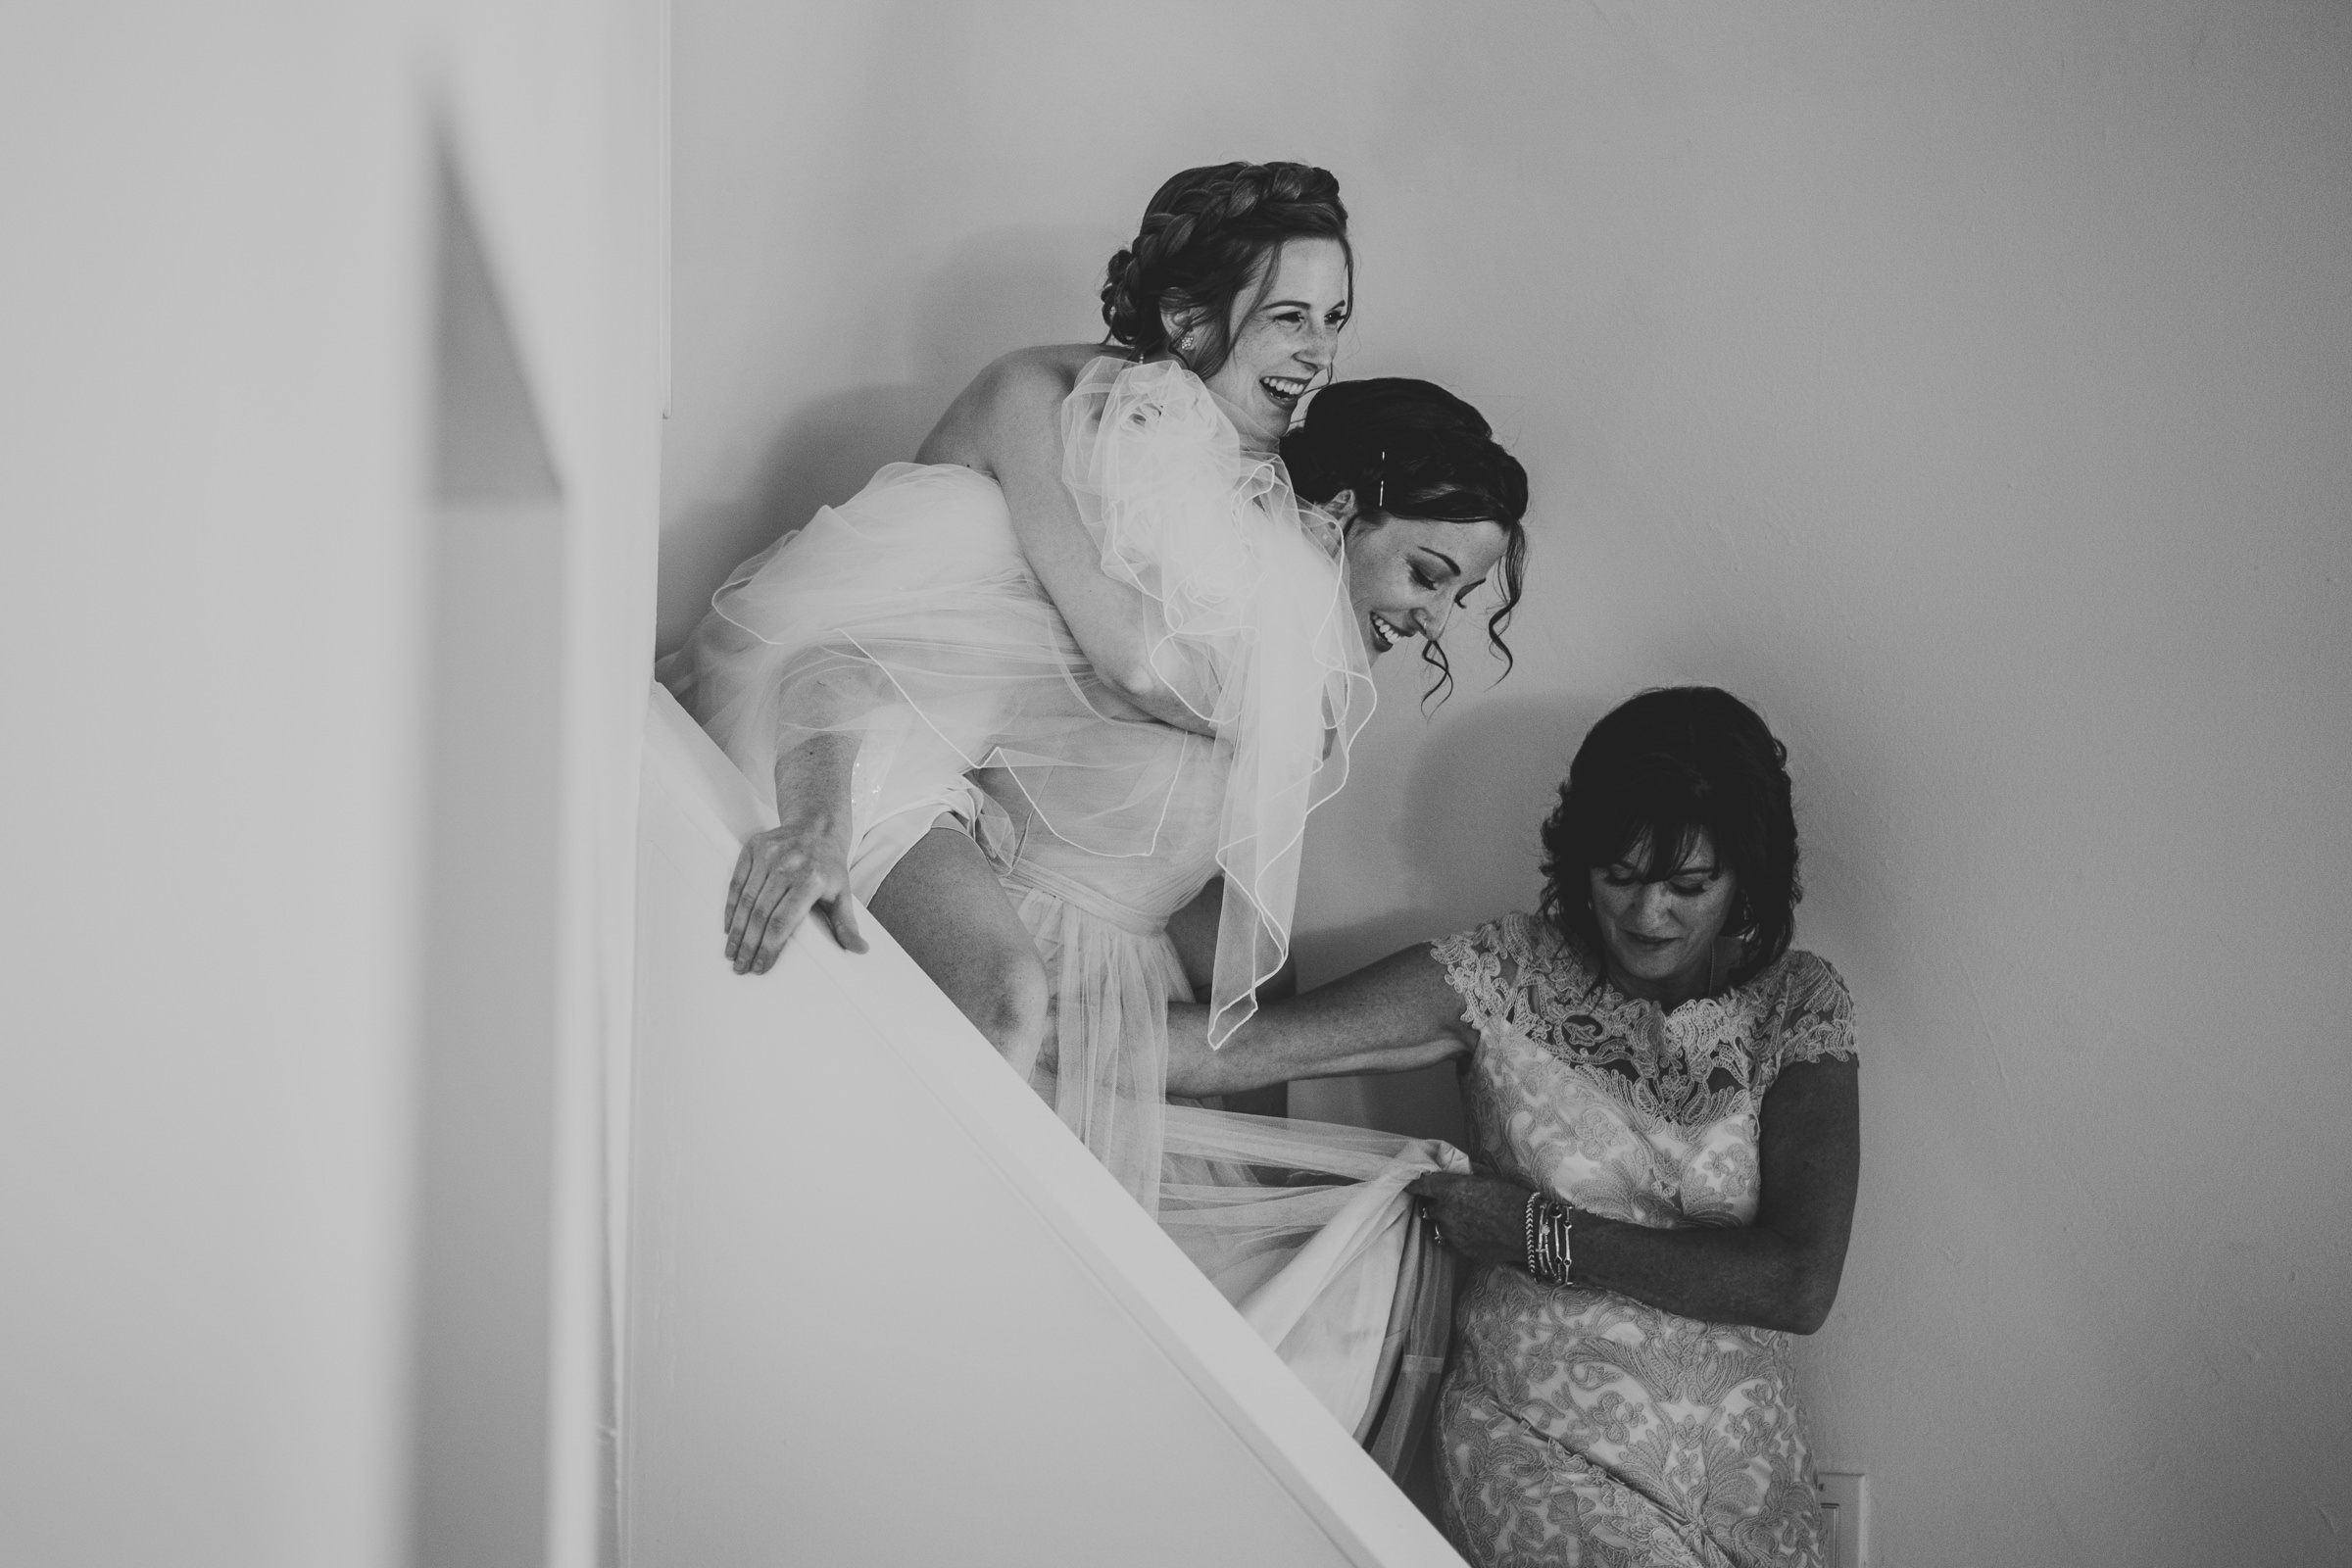 Bride getting piggy back down stairs - photo by Sam Hurd - DC